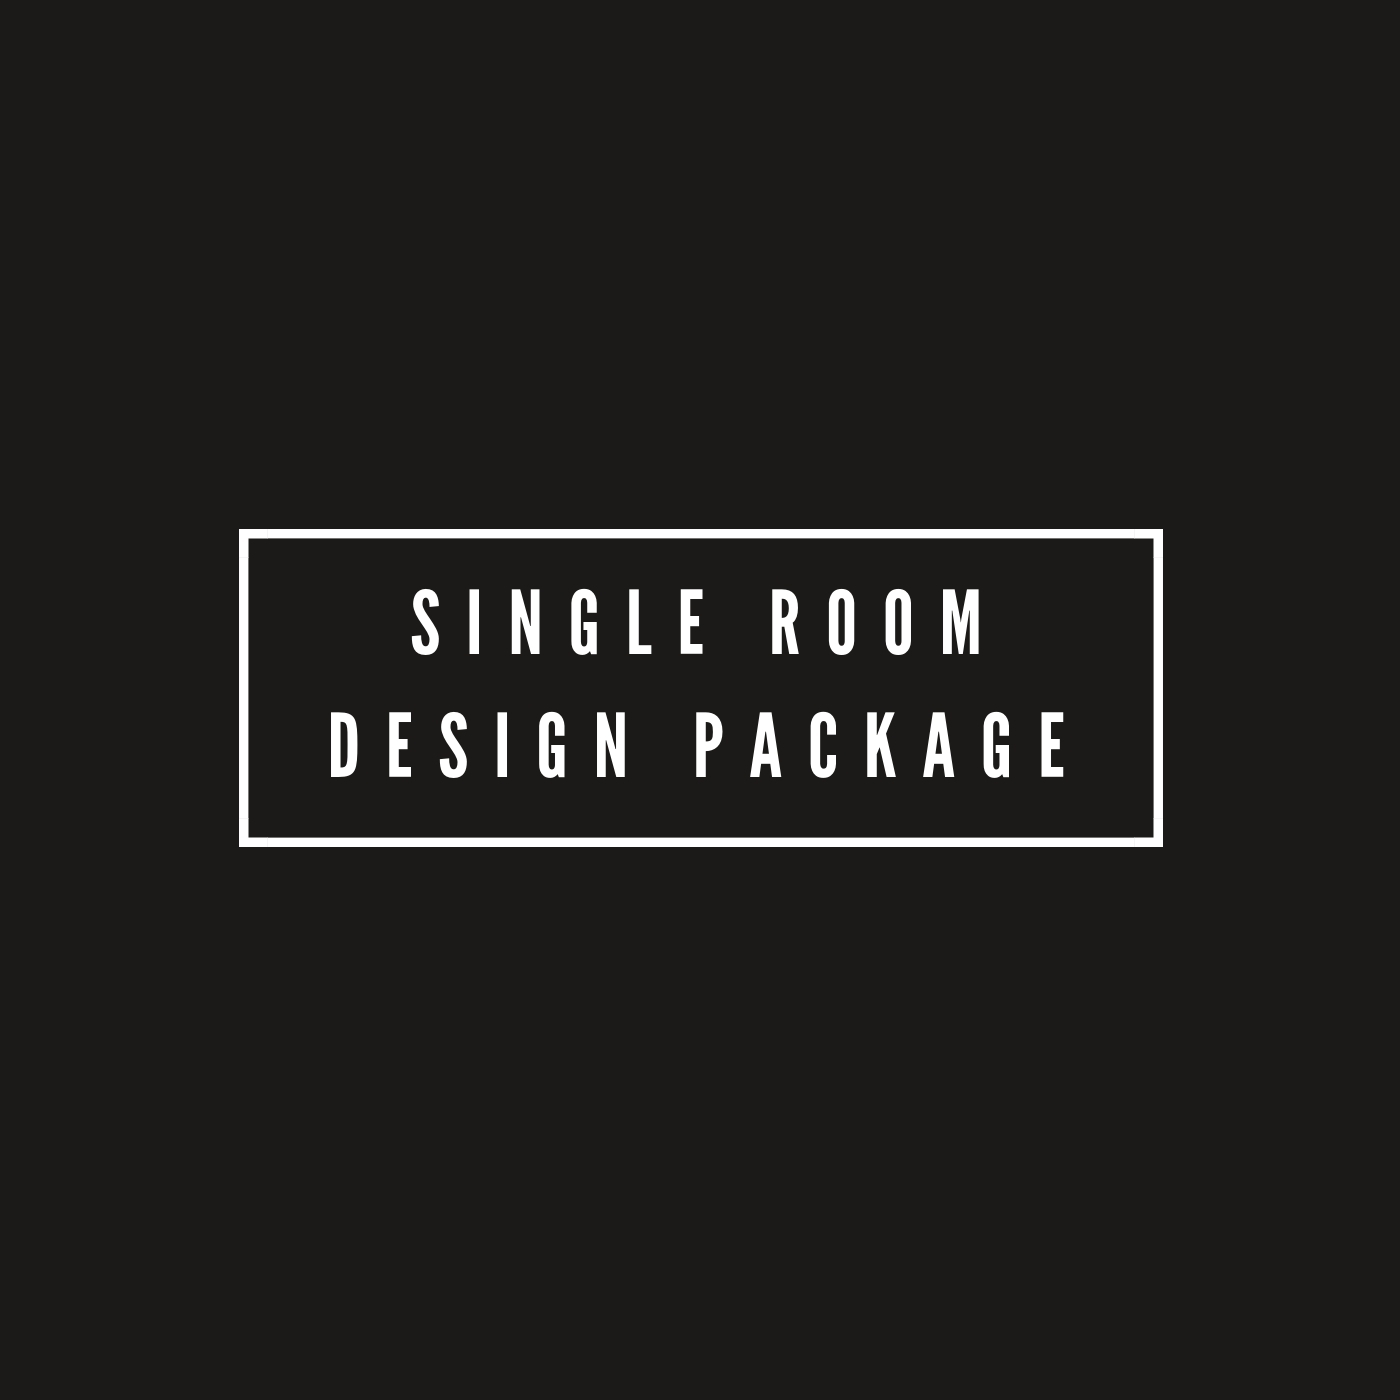 single room design package.jpg